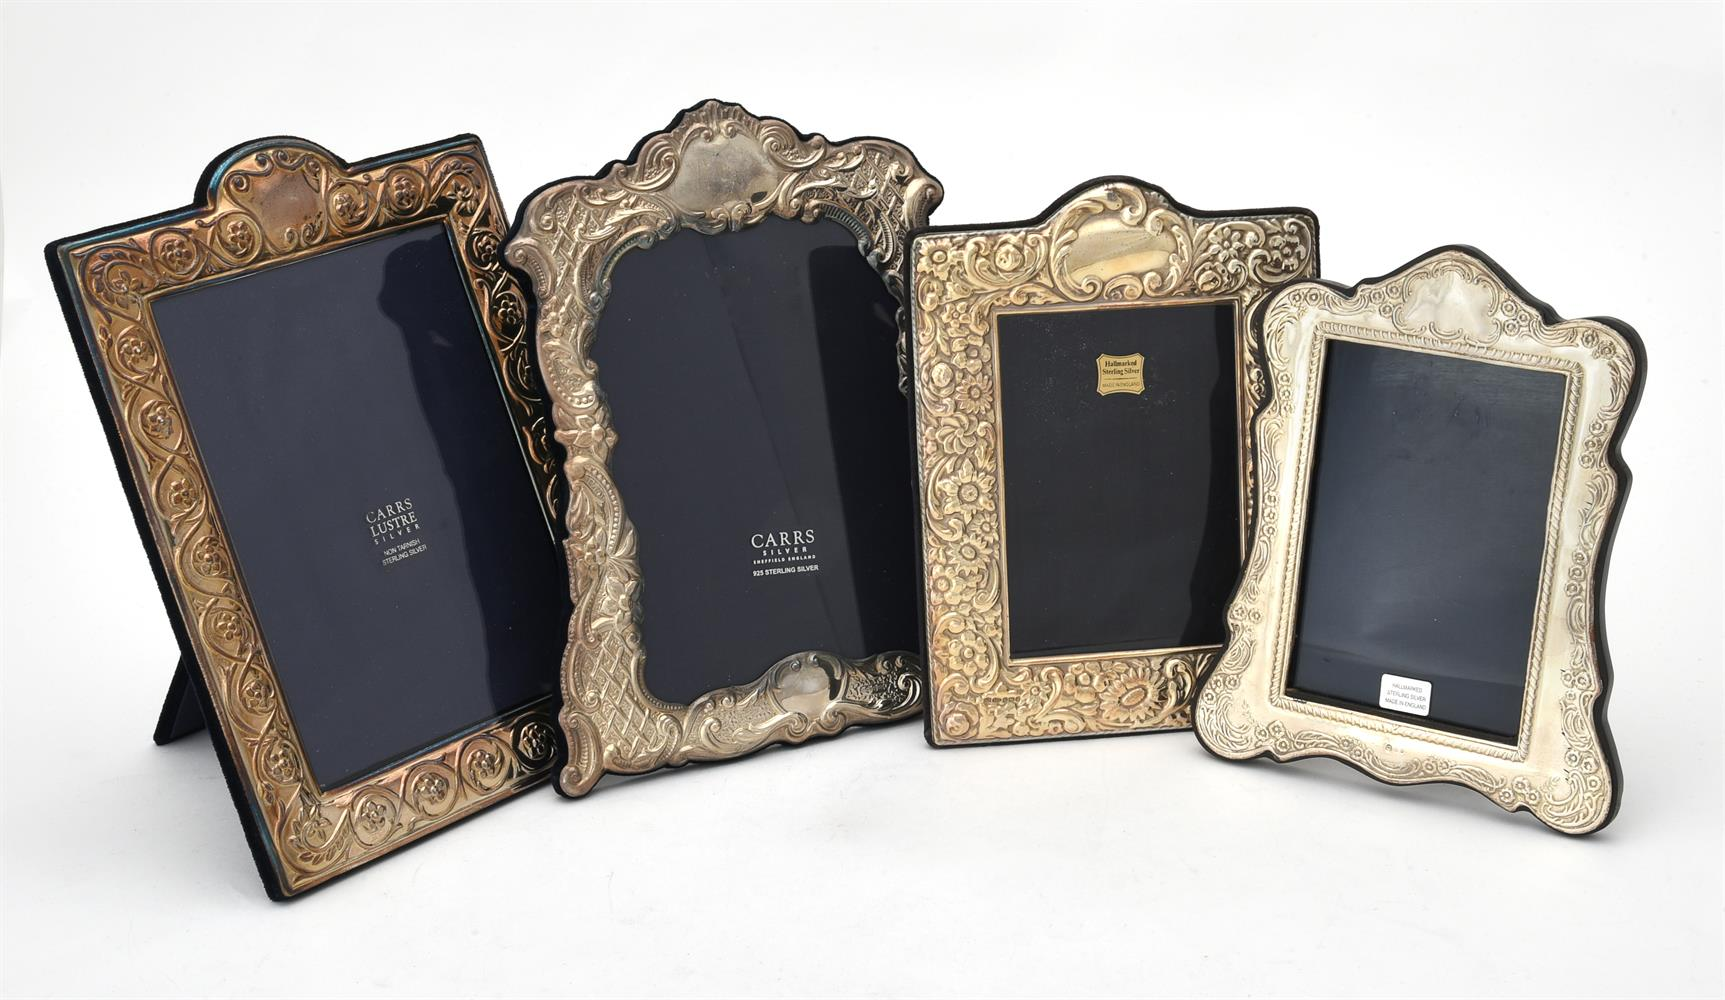 A silver mounted shaped rectangular photo frame by Carr's of Sheffield Ltd.